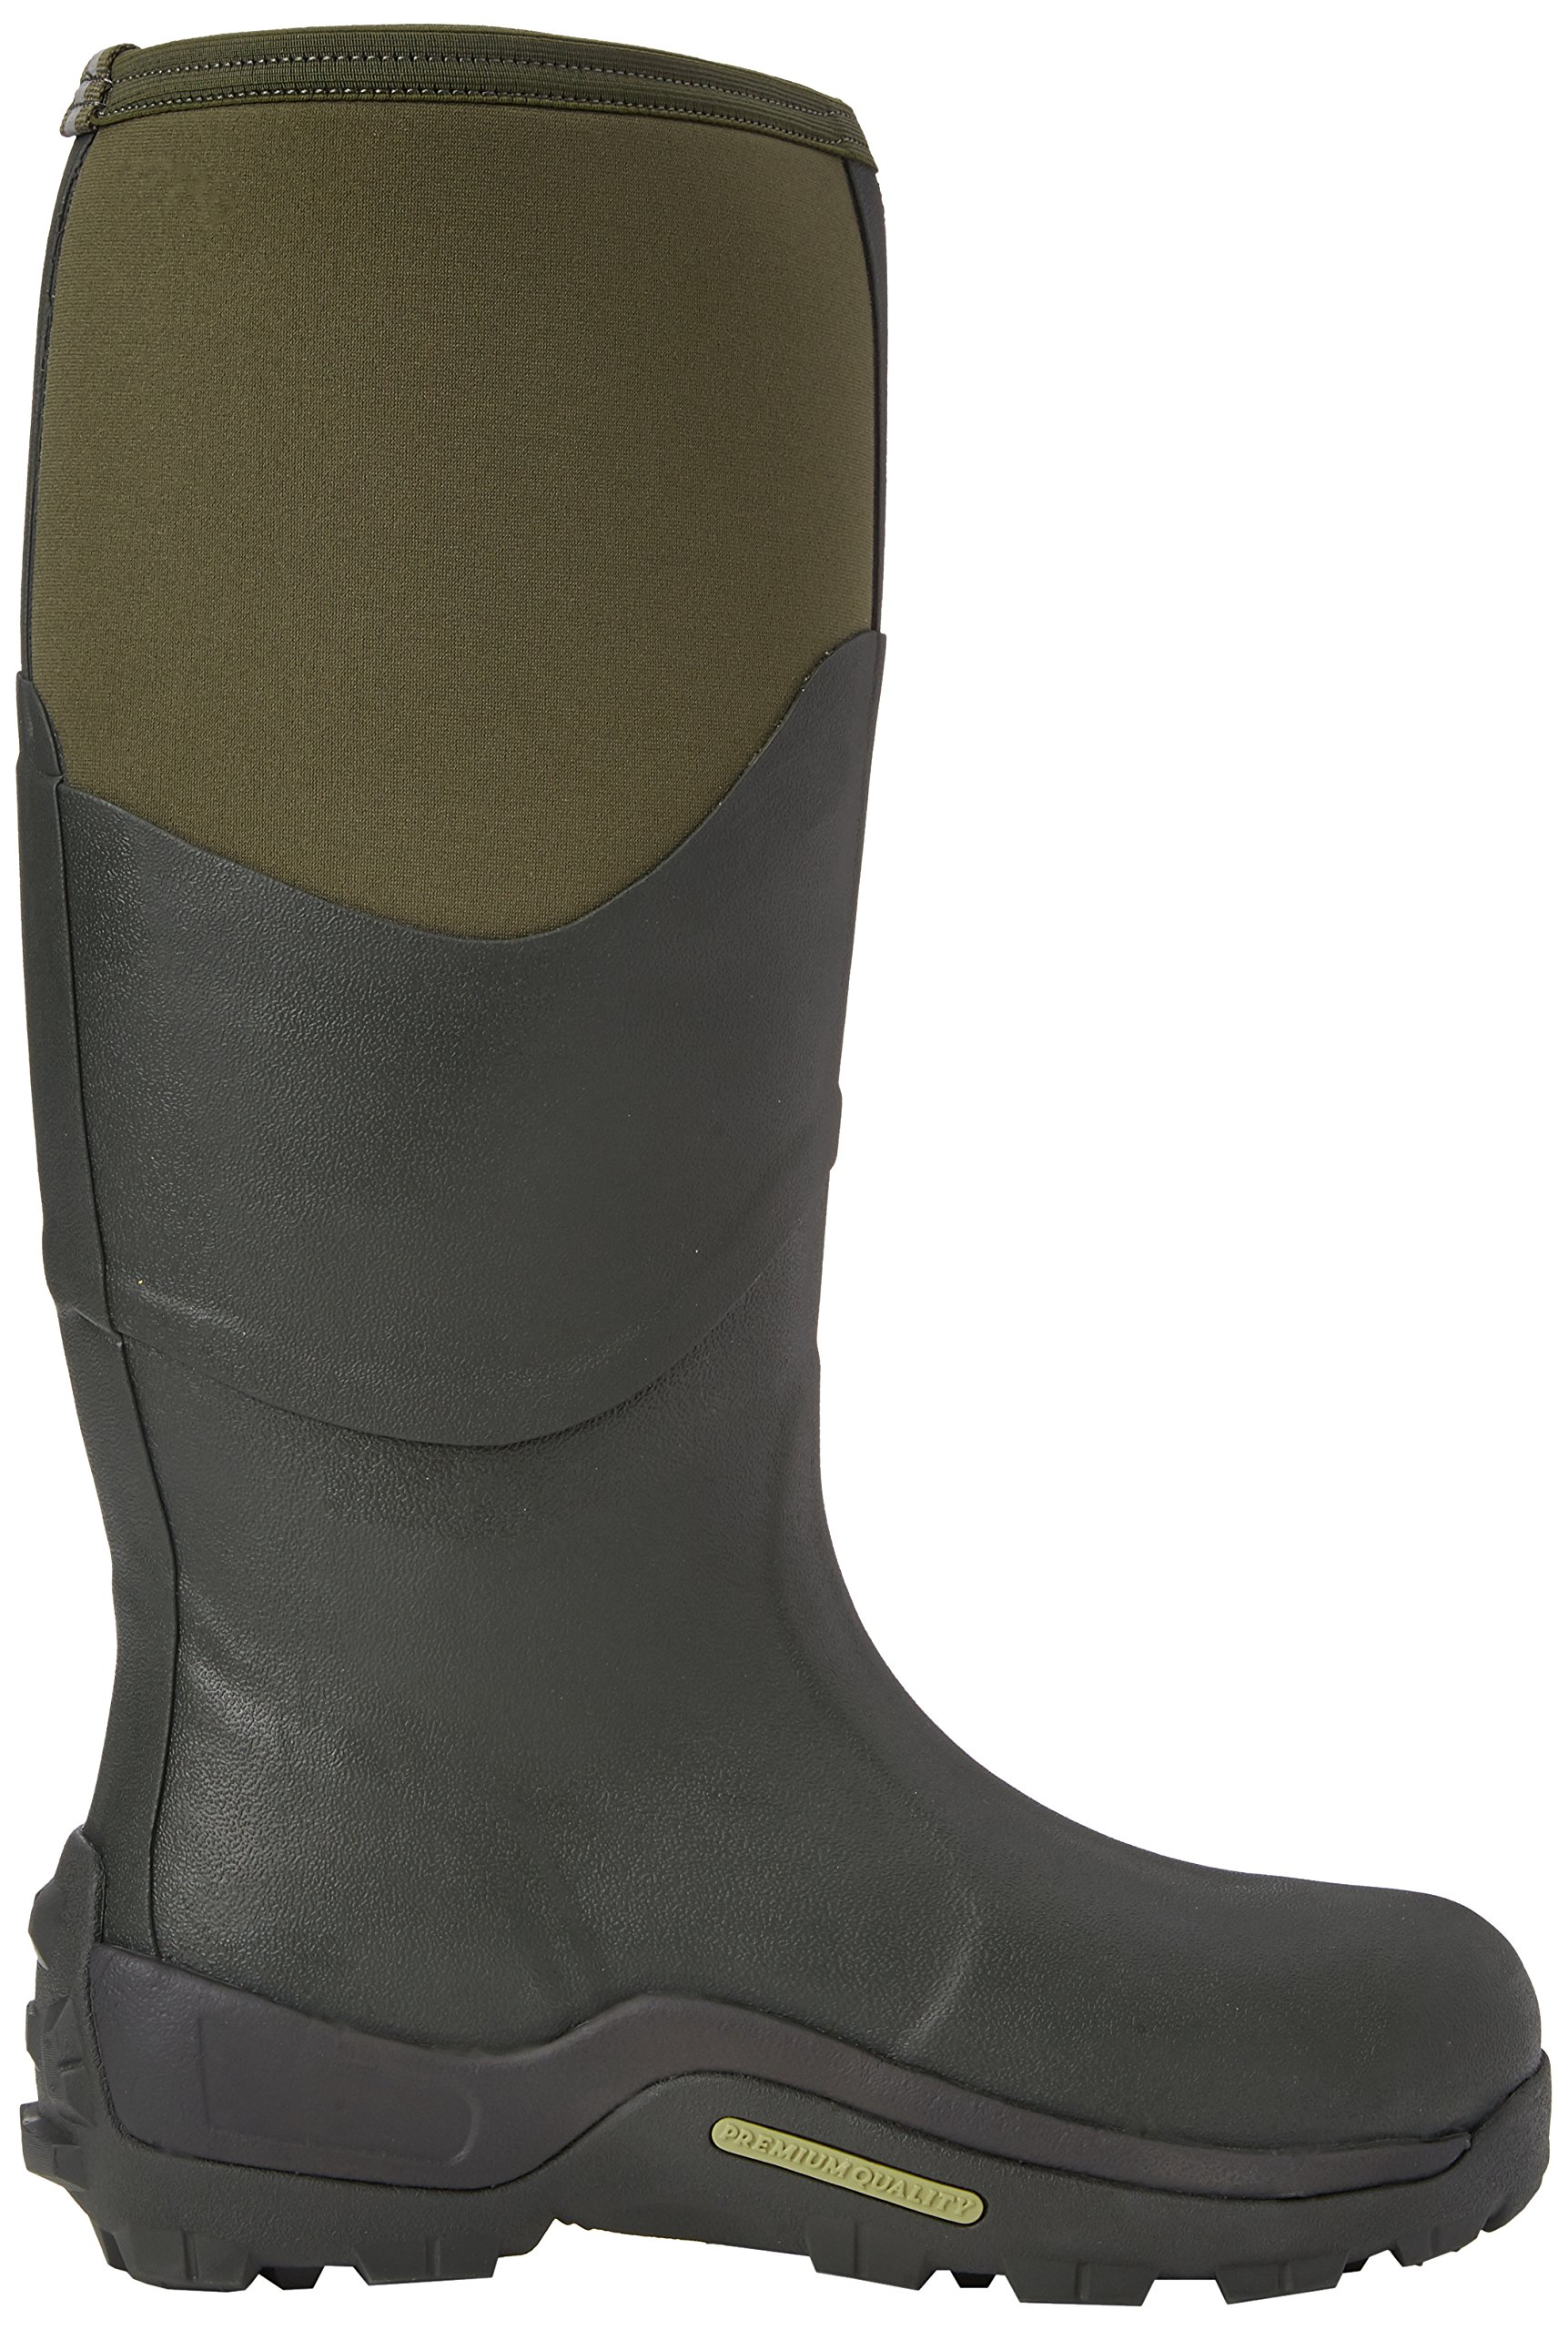 Muck Mens Muckmaster Green Textile Boots 9 US by Muck Boot (Image #6)